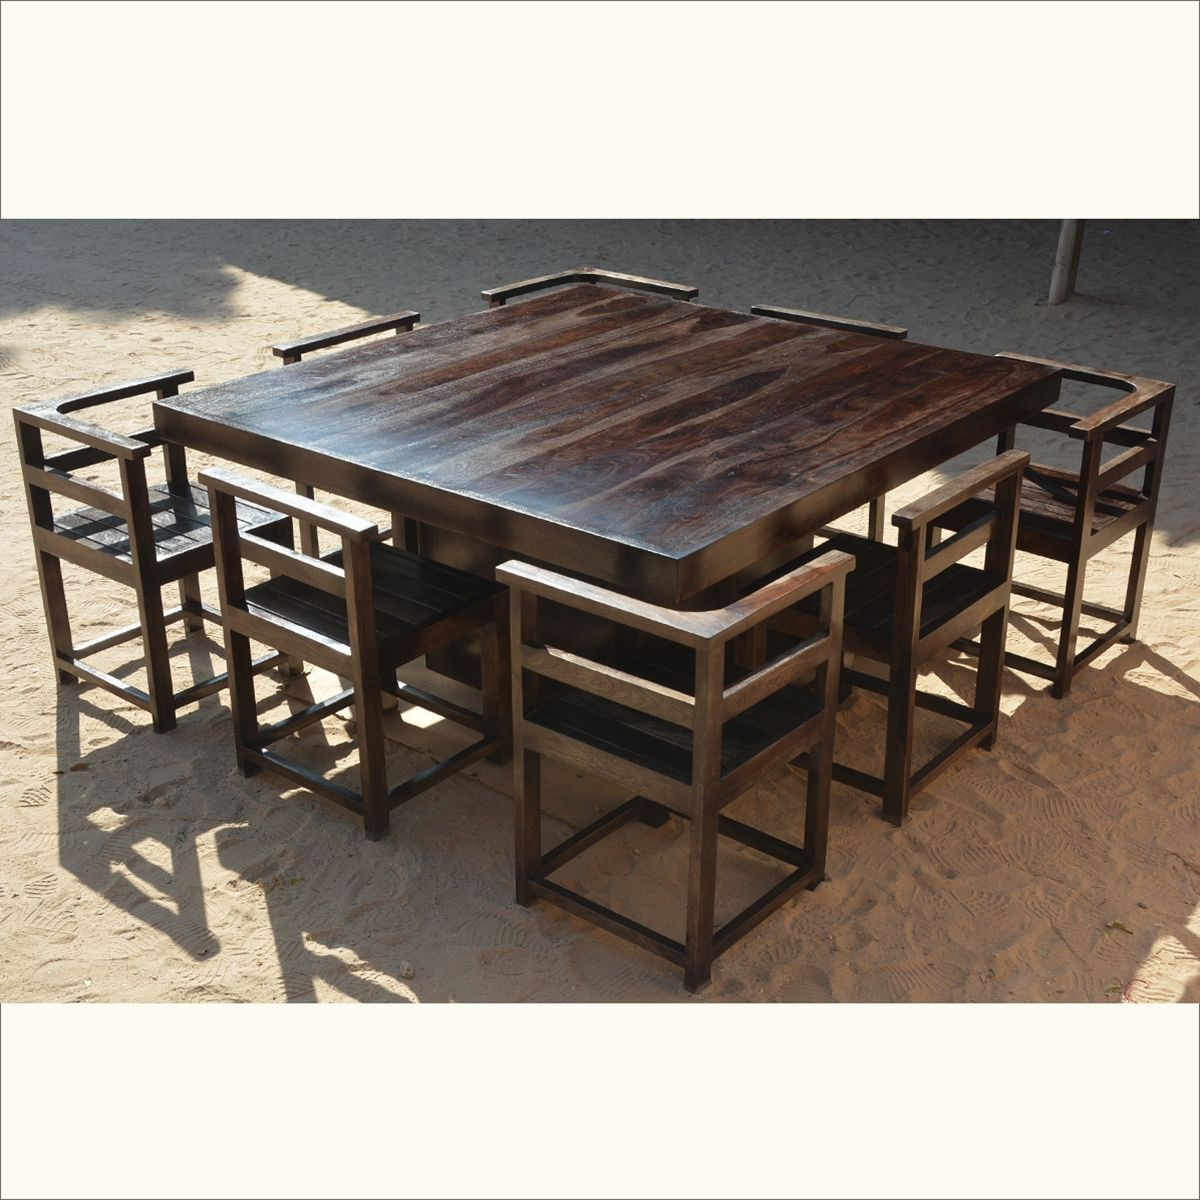 Square Dining Table For 8 Square Dining Room Table Square Kitchen Tables Square Dining Tables